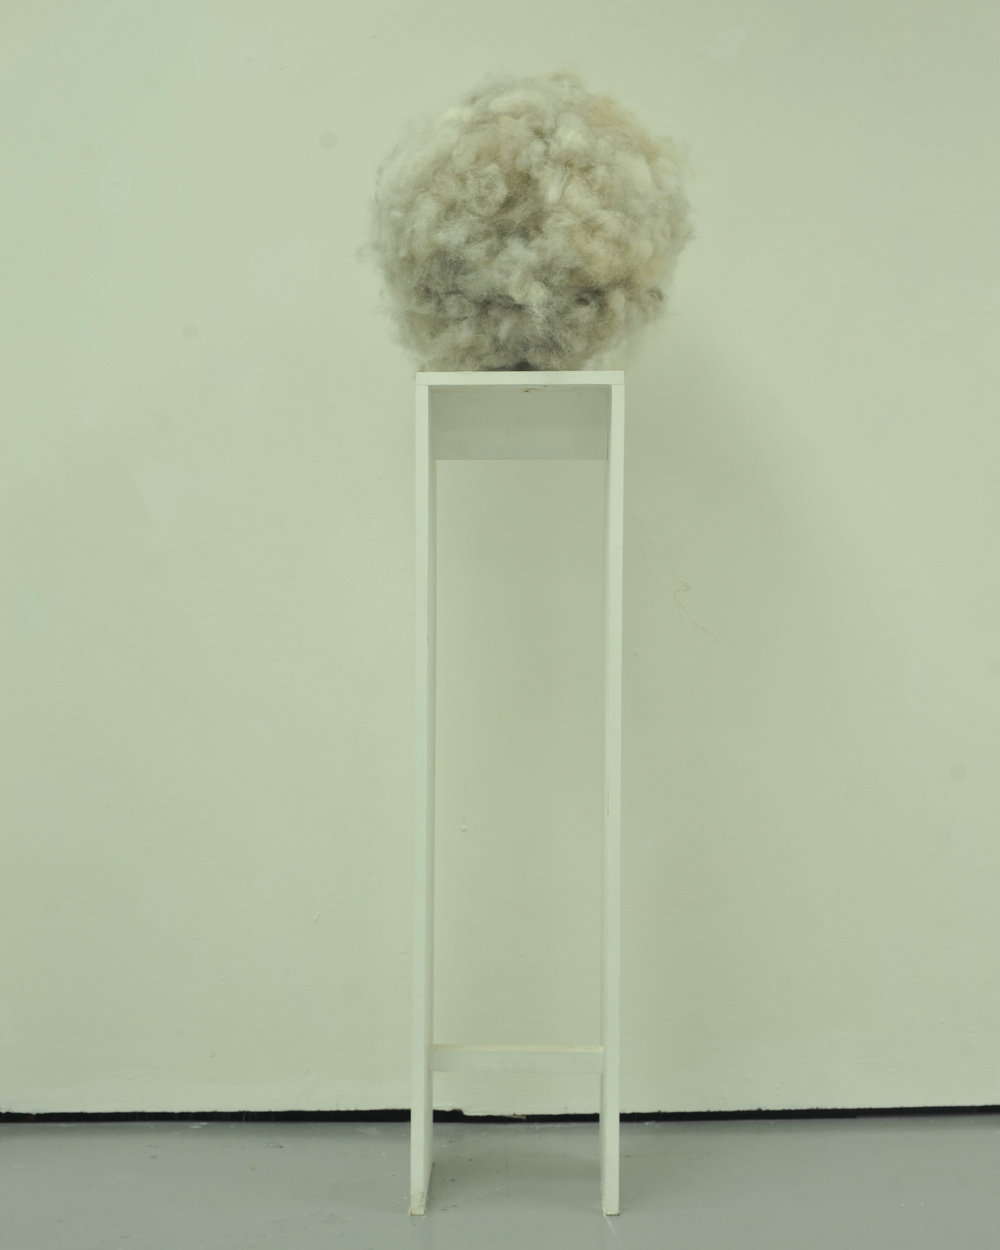 fluff 2017 dog hair, plinth 45 cm dia